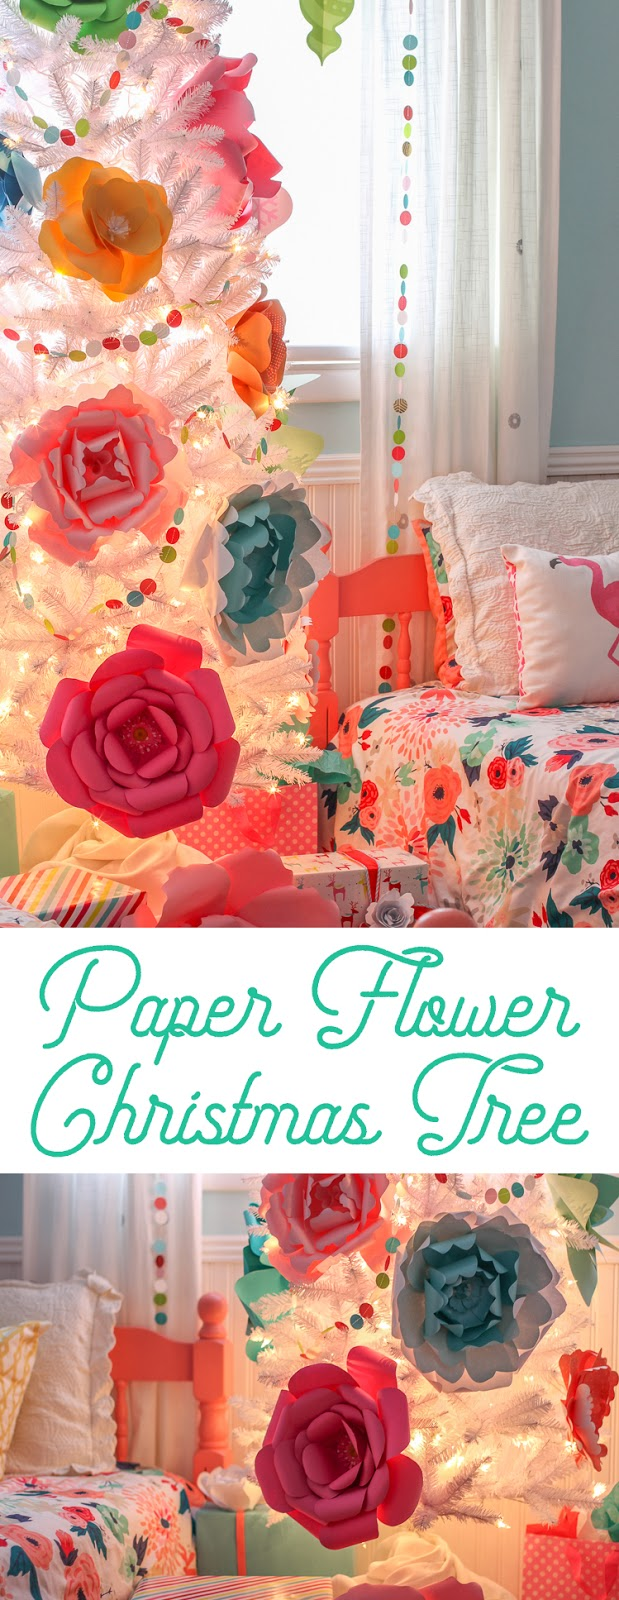 Create a whimsical and colorful Christmas tree decorated with a rainbow of giant paper flowers. Modern Christmas decor. Colorful Christmas decorating ideas. #christmas #christmastree